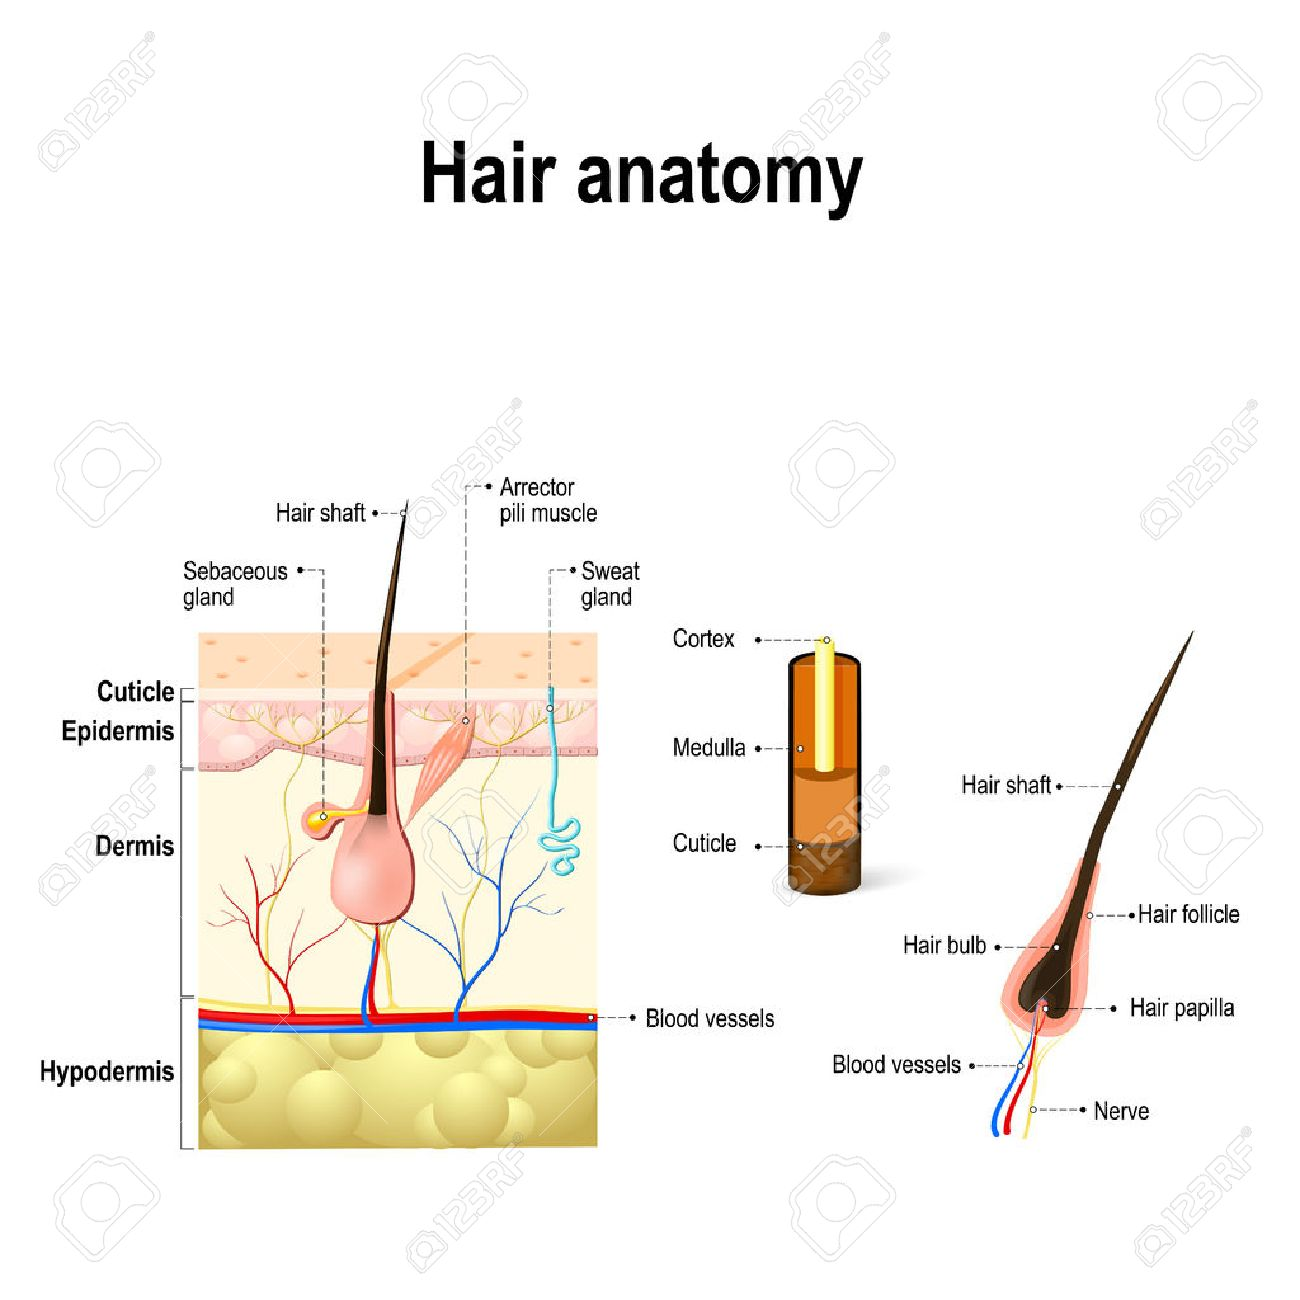 Human Hair Anatomy. Diagram Of A Hair Follicle And Cross Section ...